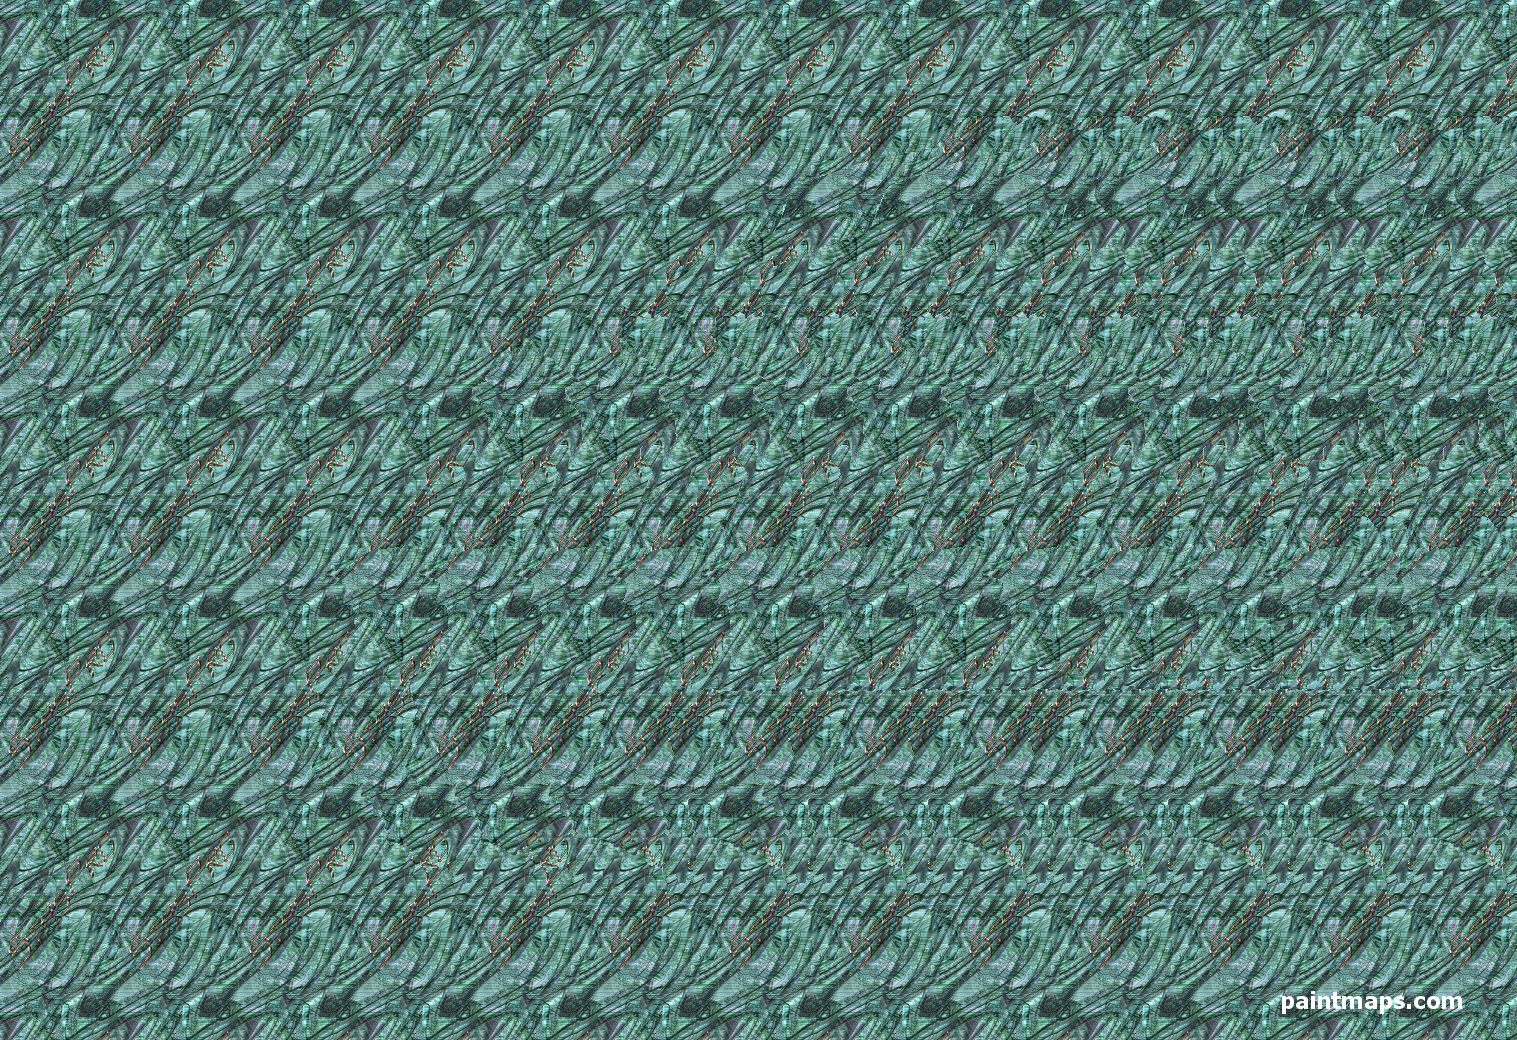 BURKINA_FASO Map in 3D Stereogram (Magic Eye)